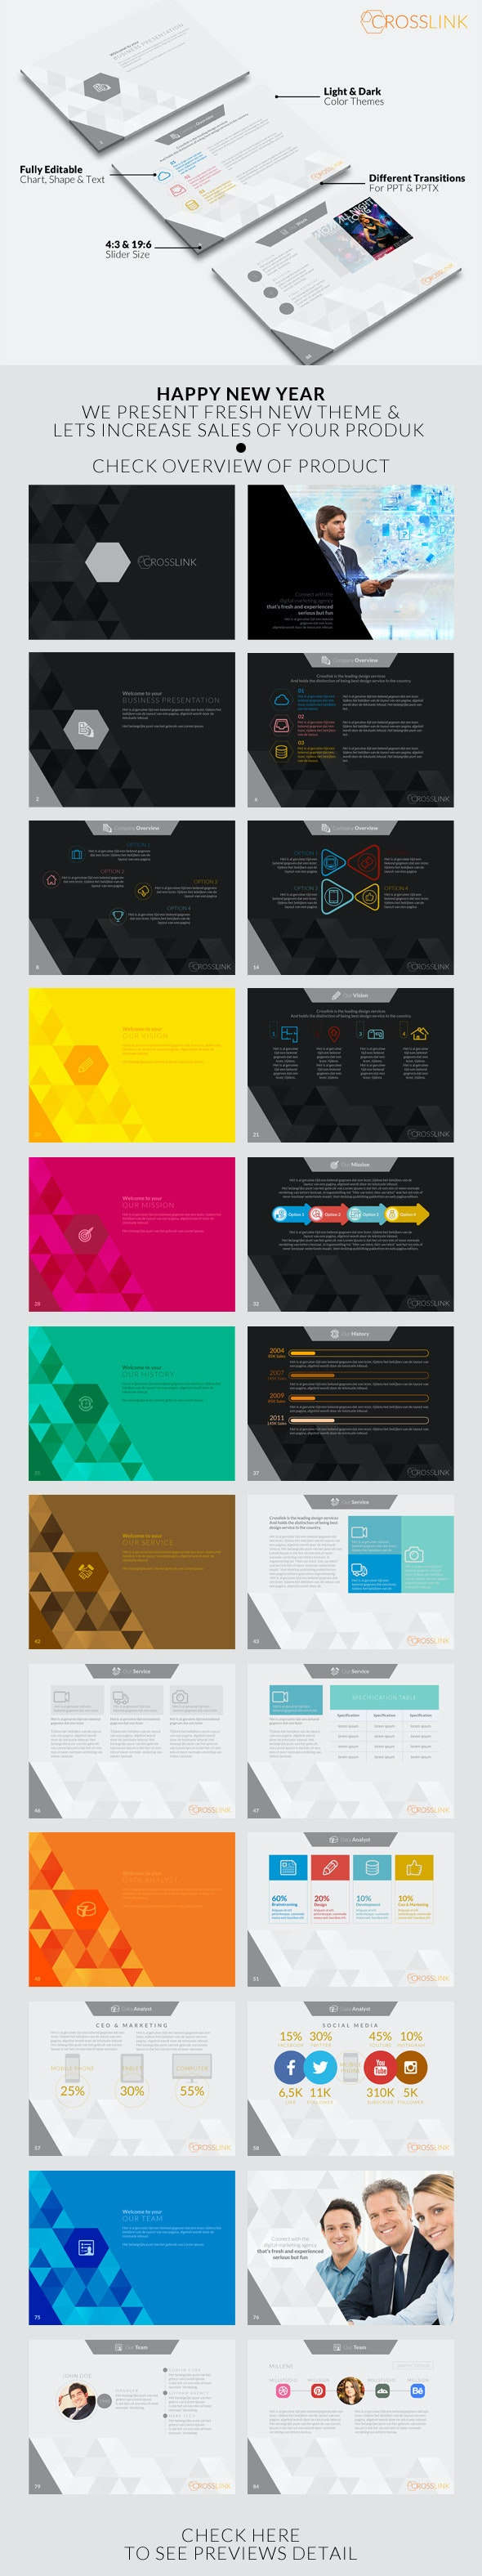 Crosslink Powerpoint Template - PowerPoint Templates Presentation Templates